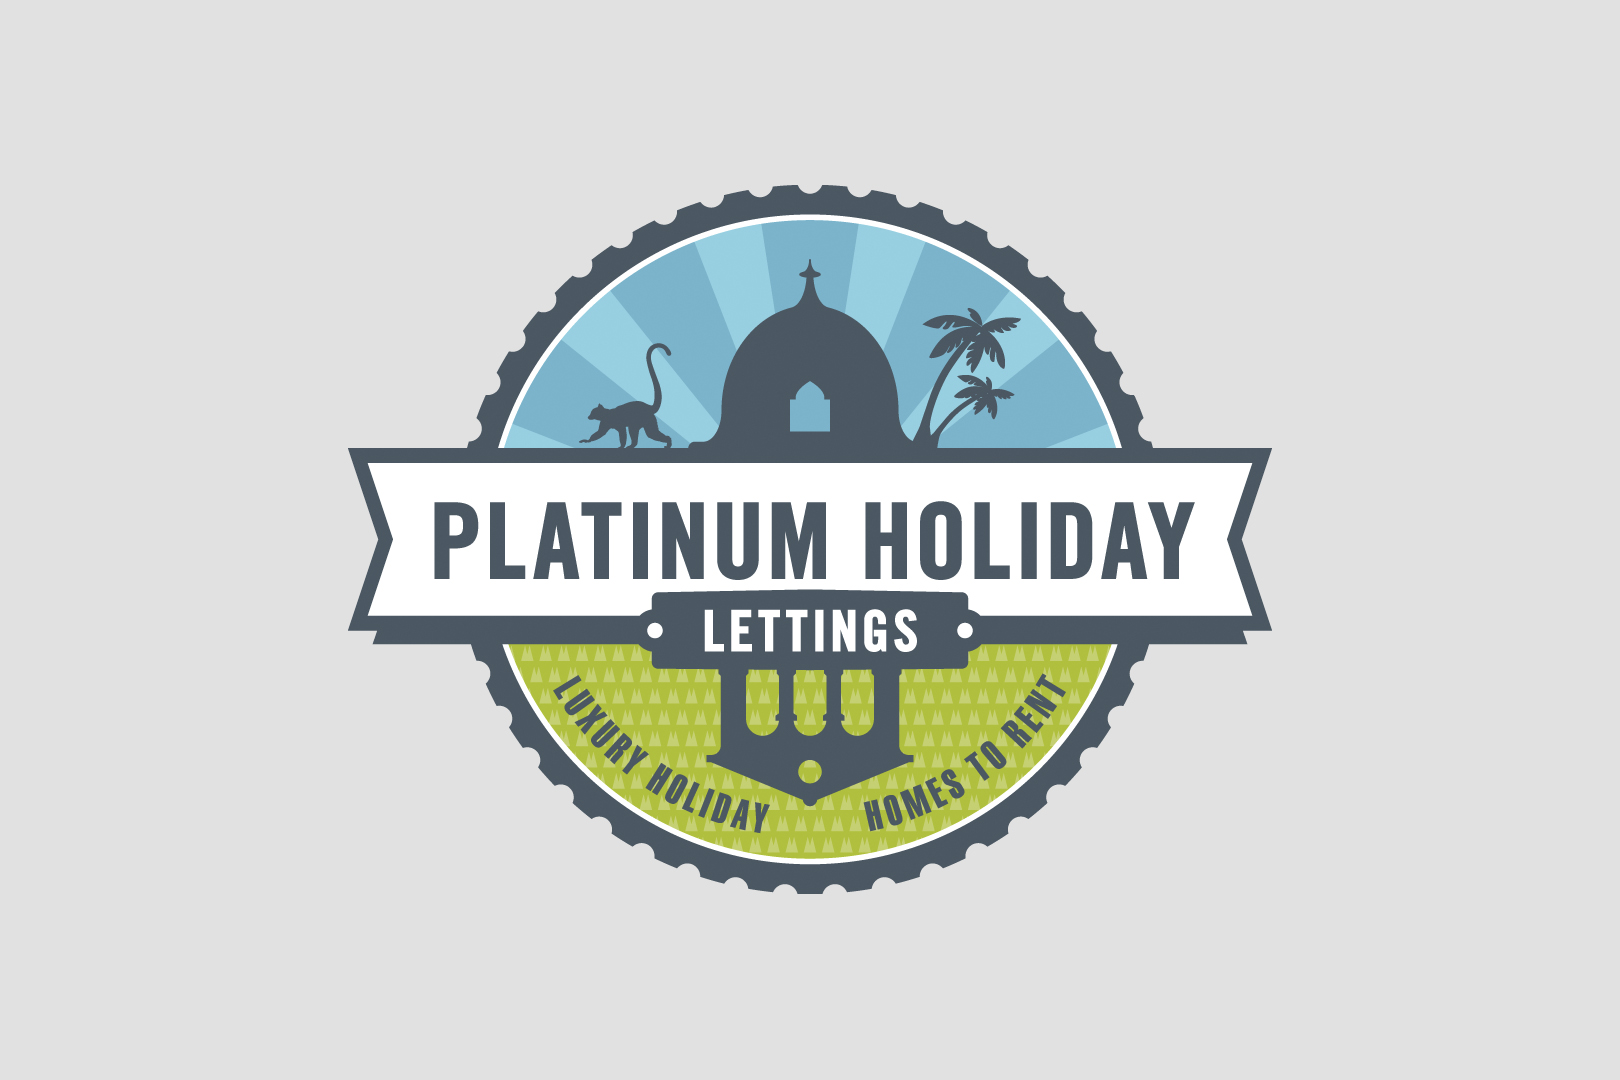 Platinum Holiday Lettings